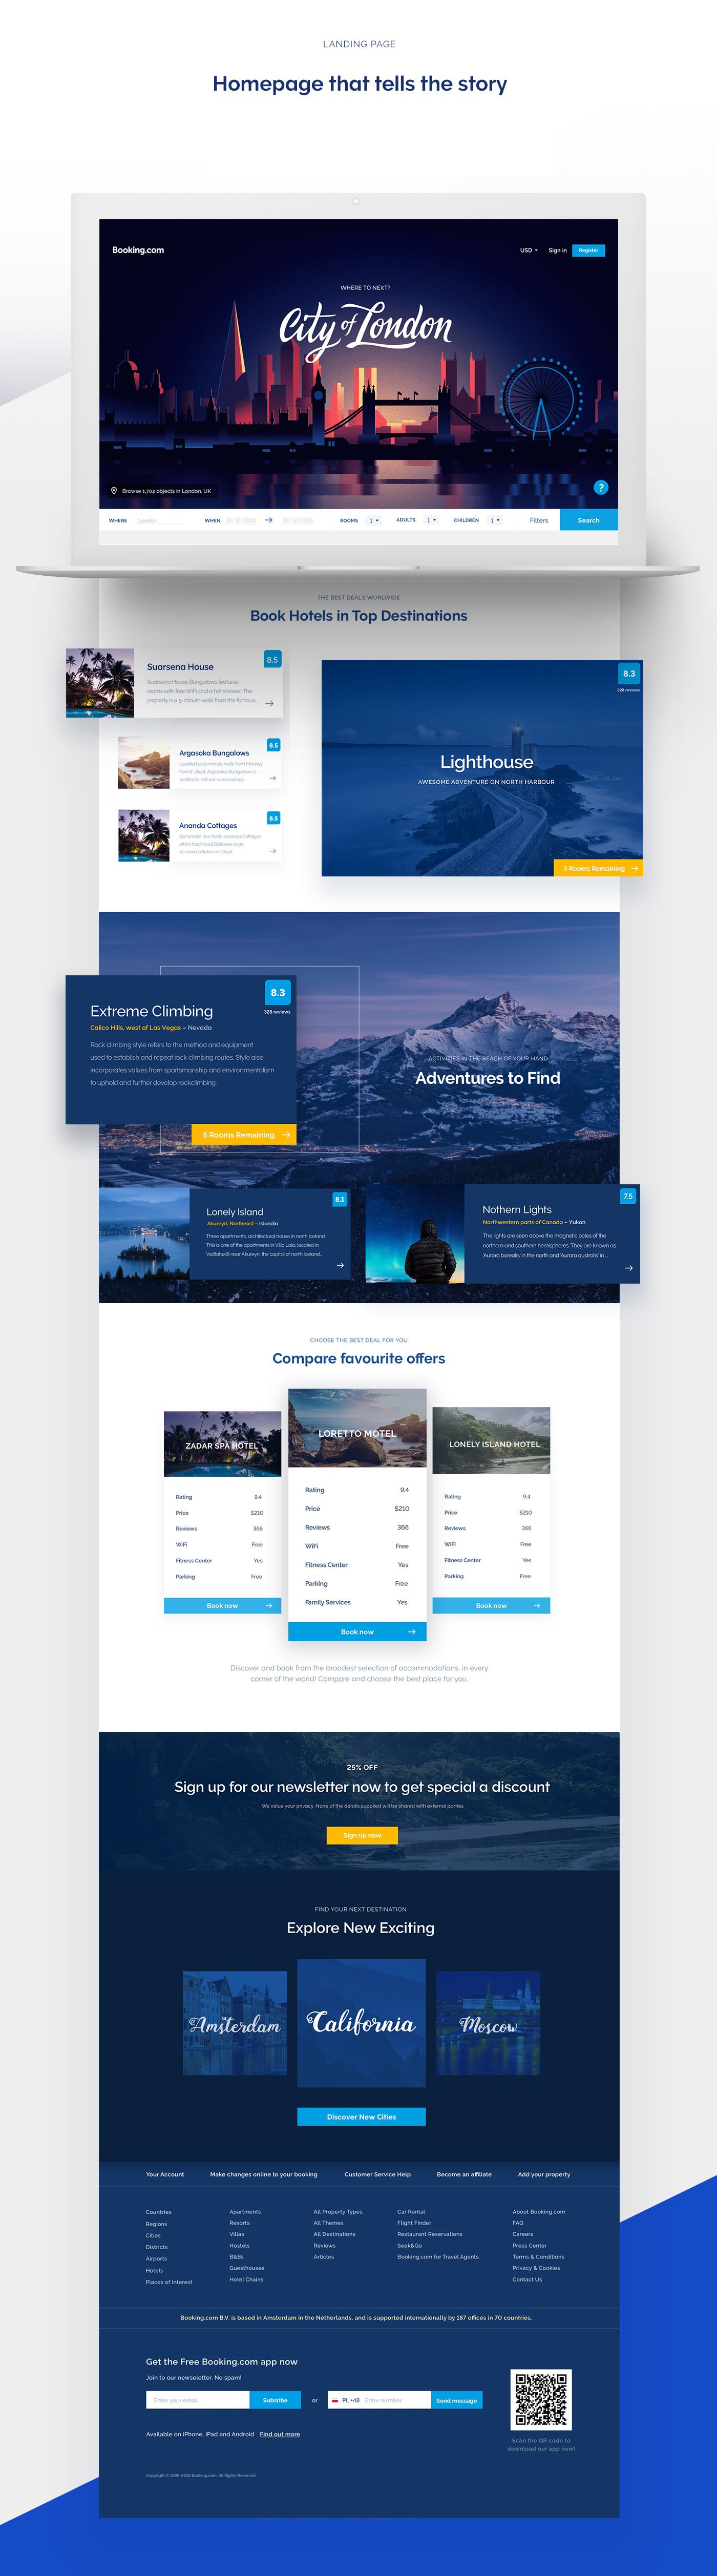 Booking Com Is The World 39 S Largest Accommodation Website We Wanted To Give It A Fresh Consistent Loo Web Design Trends Creative Web Design Website Design